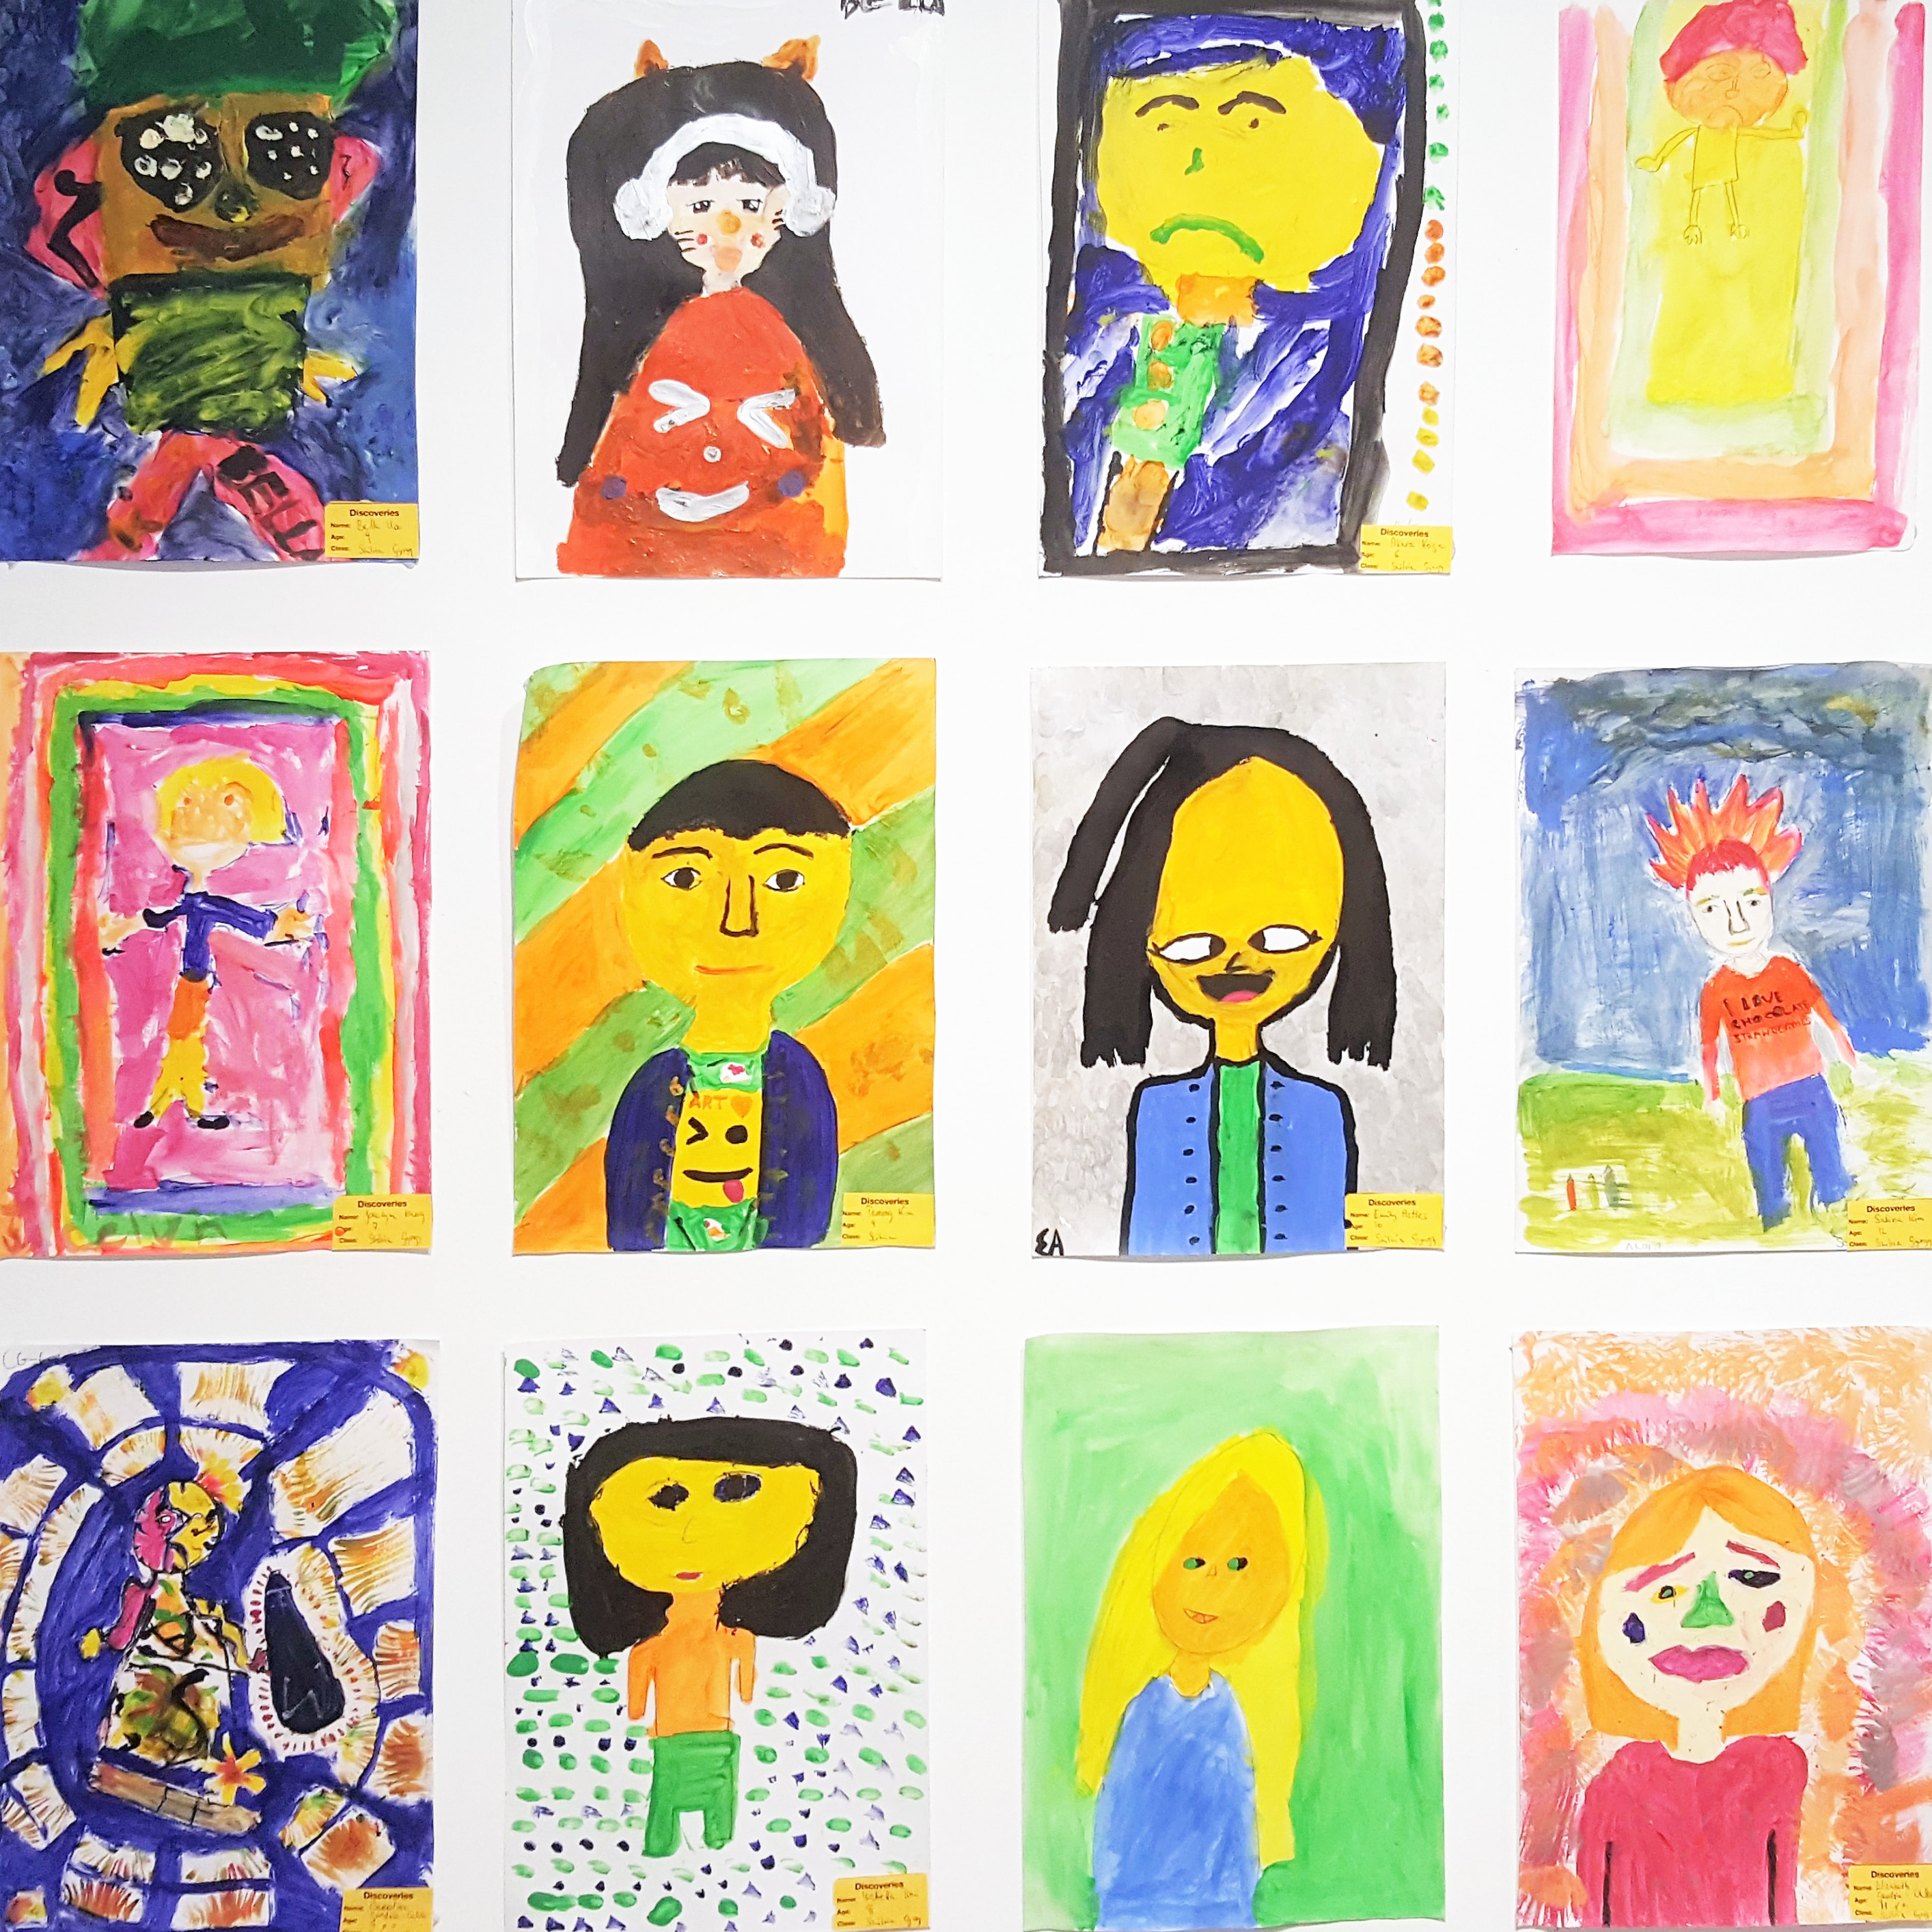 Art Tuesday for Young Children (5 to 12 year olds) - Szilvia Gyorgy